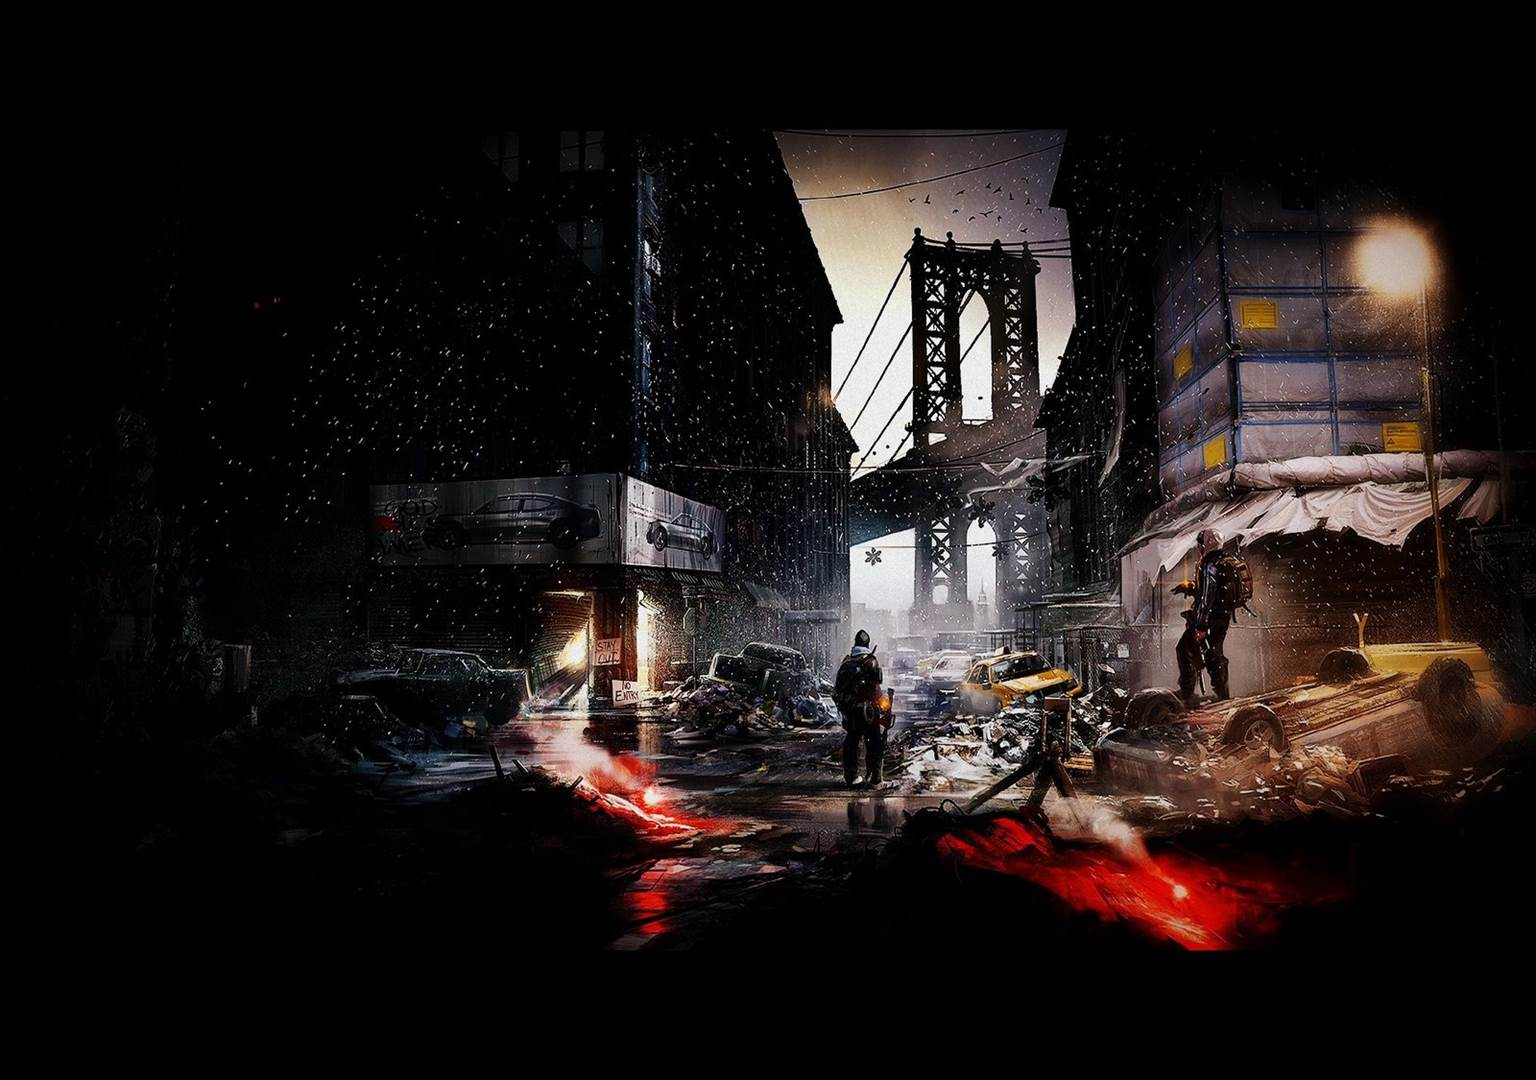 Tom Clancys The Division Wallpapers in 1080P HD GamingBoltcom 1536x1080